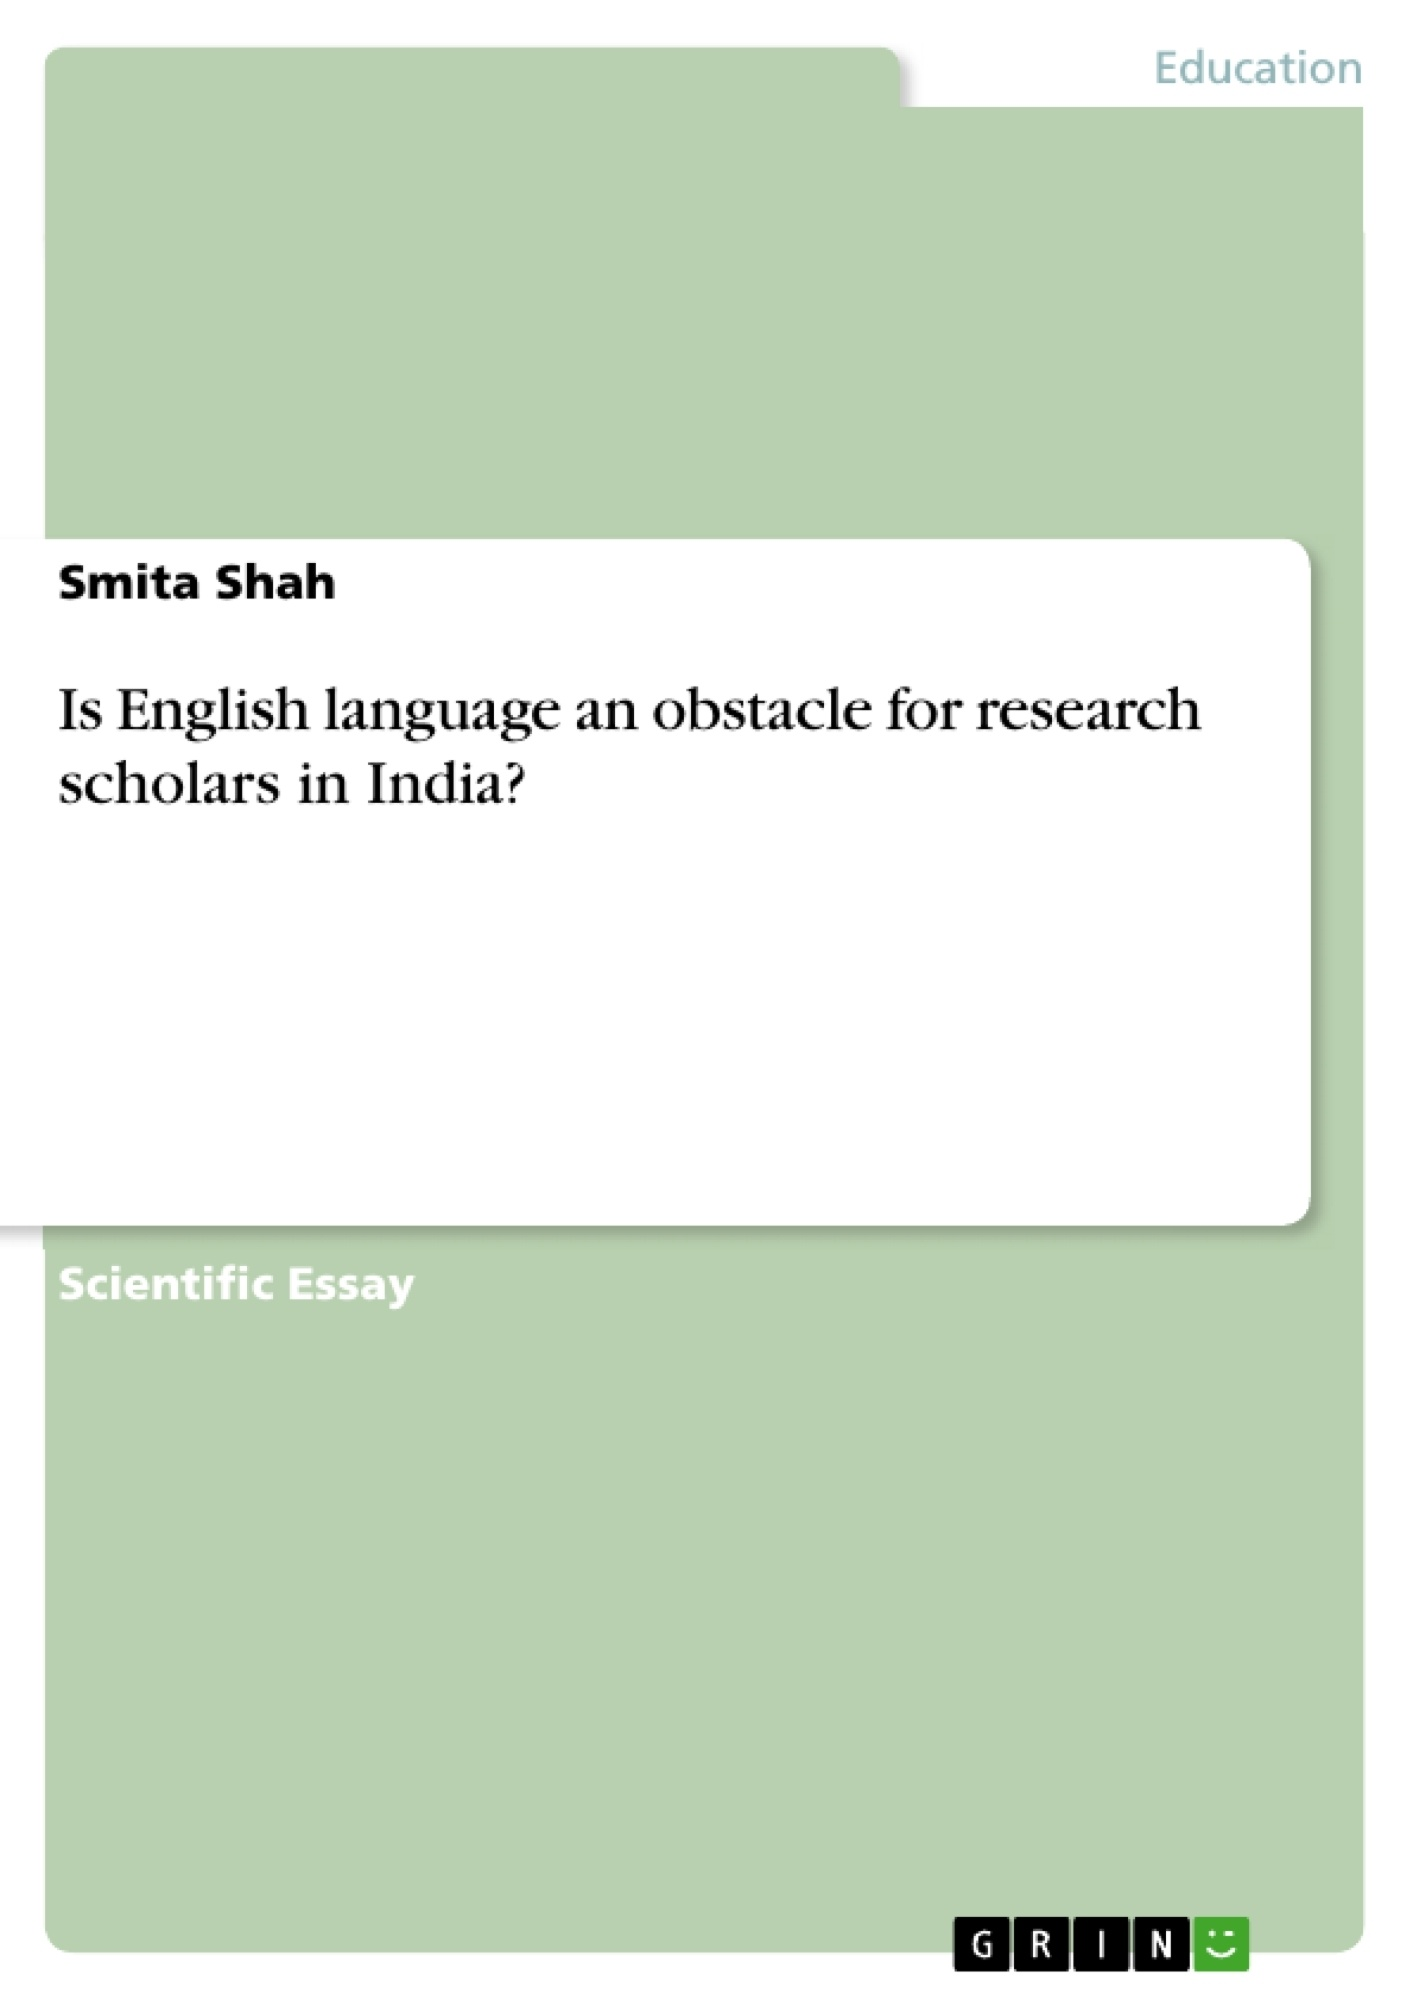 Title: Is English language an obstacle for research scholars in India?